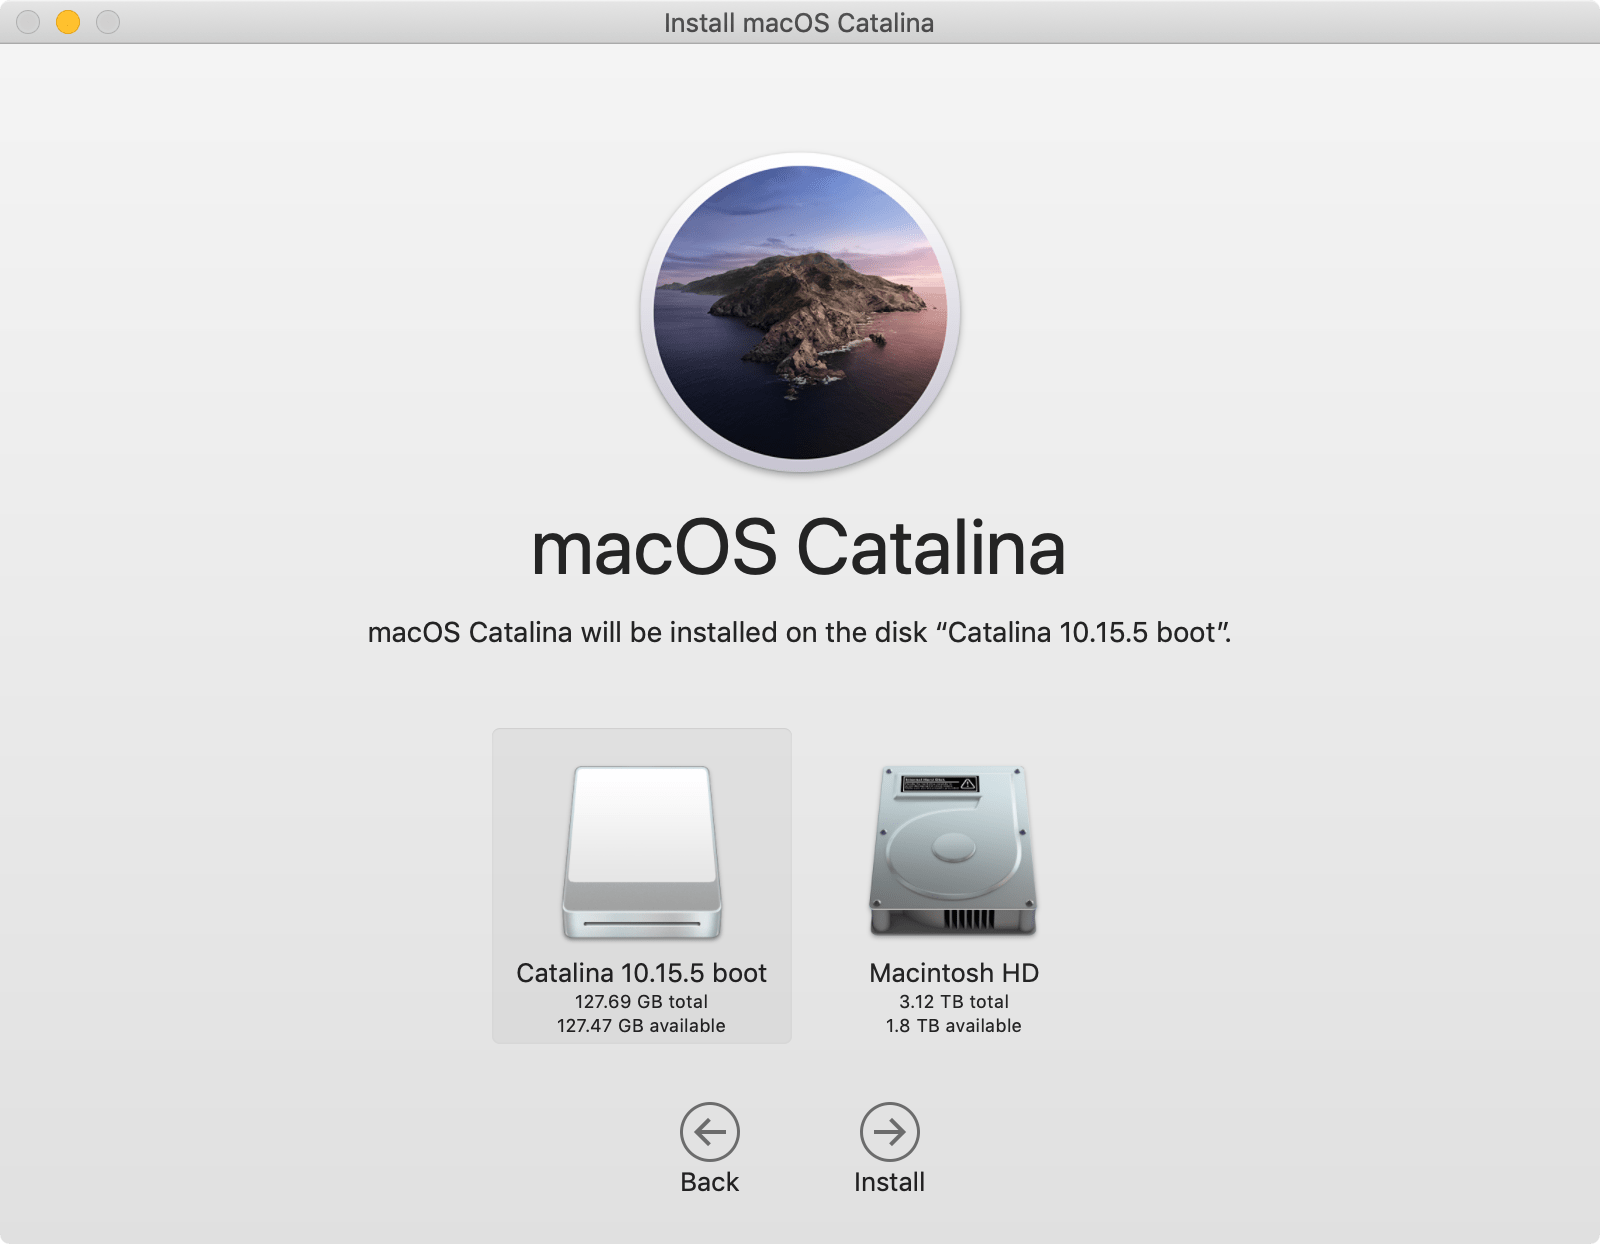 macOS installation: select your new USB bootable disk for the macOS installation.